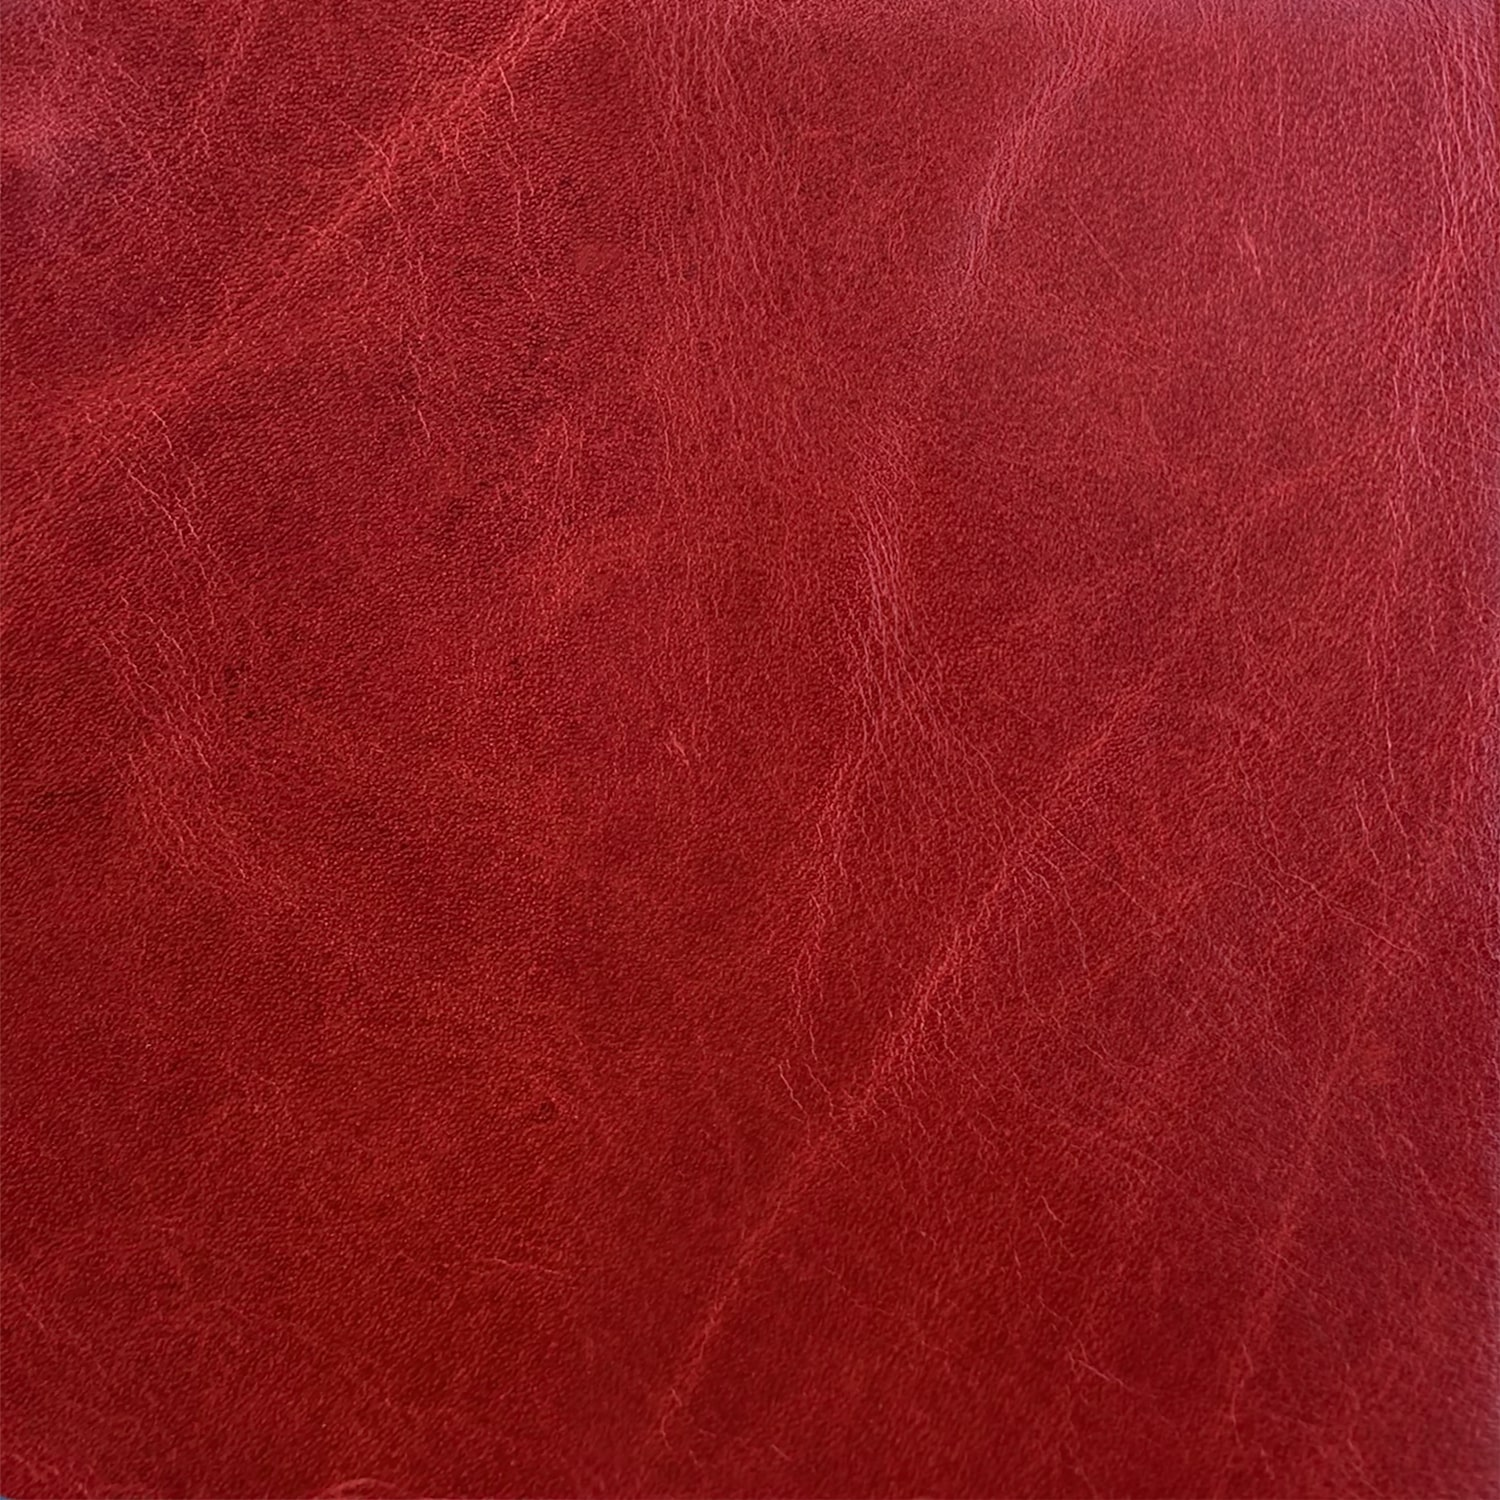 Flagstaff: Crimson (grade G): #FLG1813<br>Unique distressed markings, permiated with wax, rich vibrant color; light protection